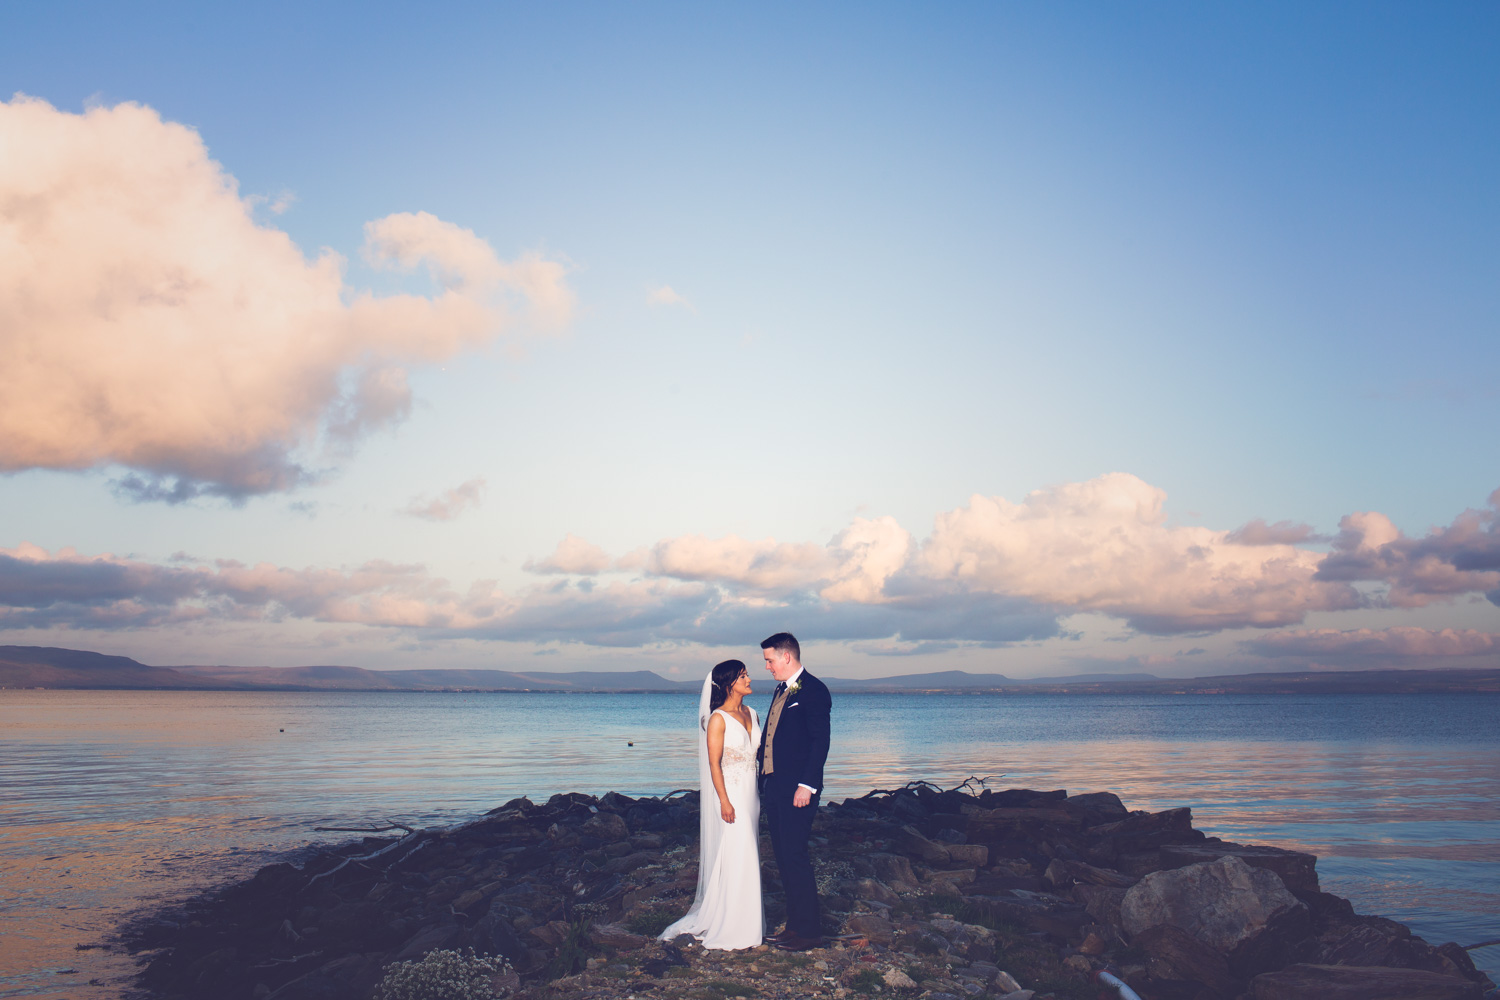 Mark_Barnes_Northern_Ireland_wedding_photographer_redcastle_hotel_Donegal_Wedding_photography_Donegal_wedding_photographer-48.jpg